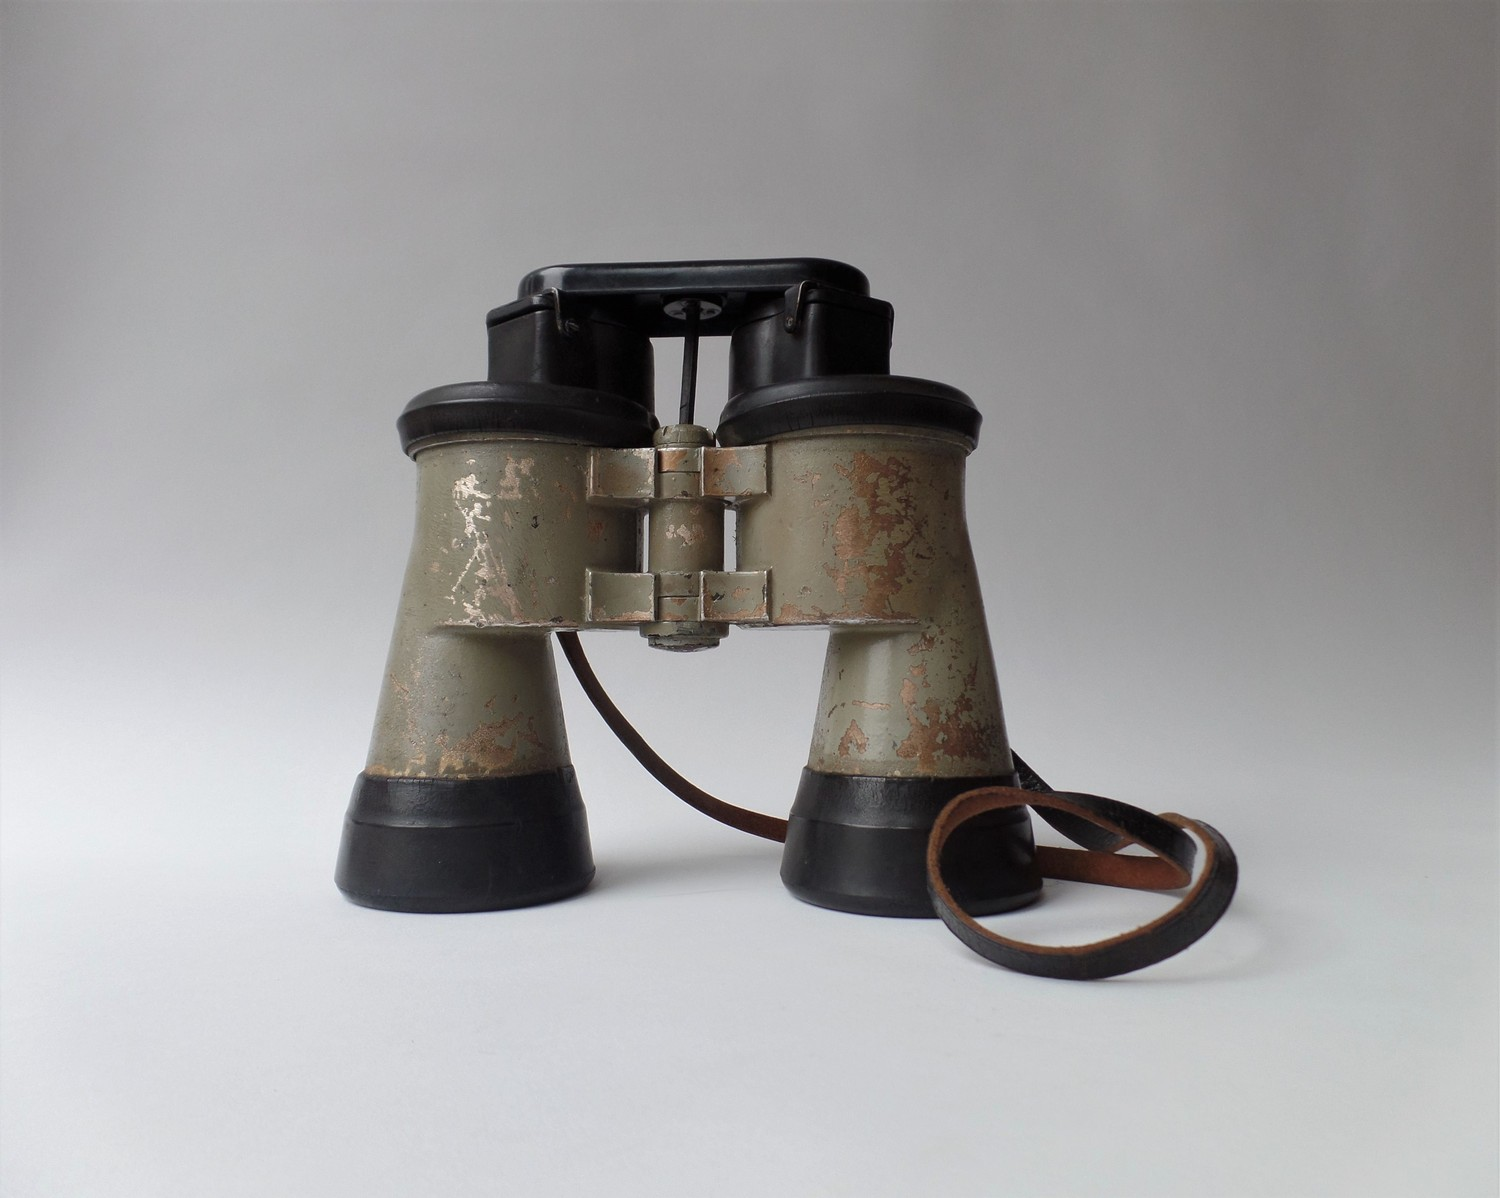 U-BOAT BINOCULARS – CARL ZEISS 7X50 BLC 1943 – 1944 CLEANED AND SERVICED